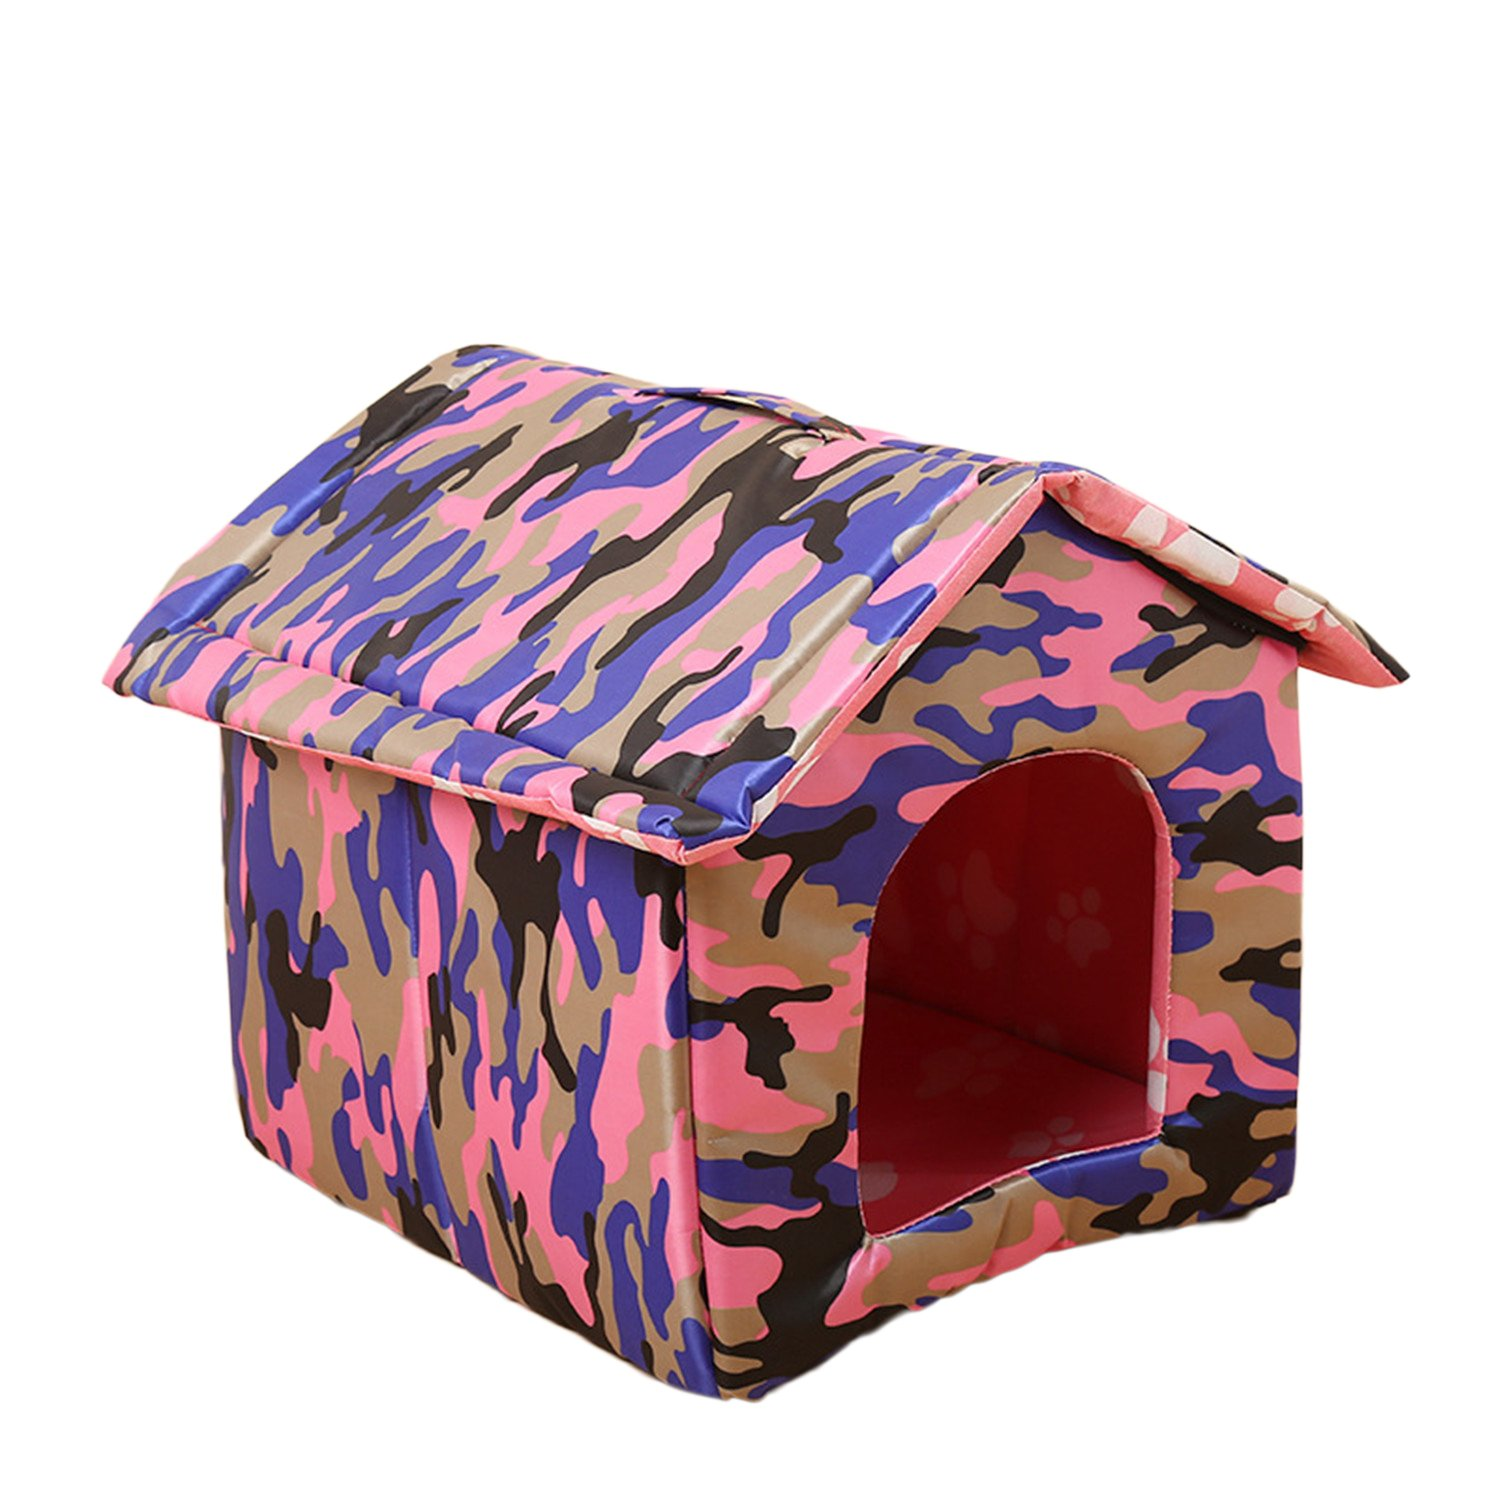 Legendog Pet House Dog Cat house Fashion Foldable Detachable Washable Pet Nest Pet Cave for Dogs Puppy Cats Kittens